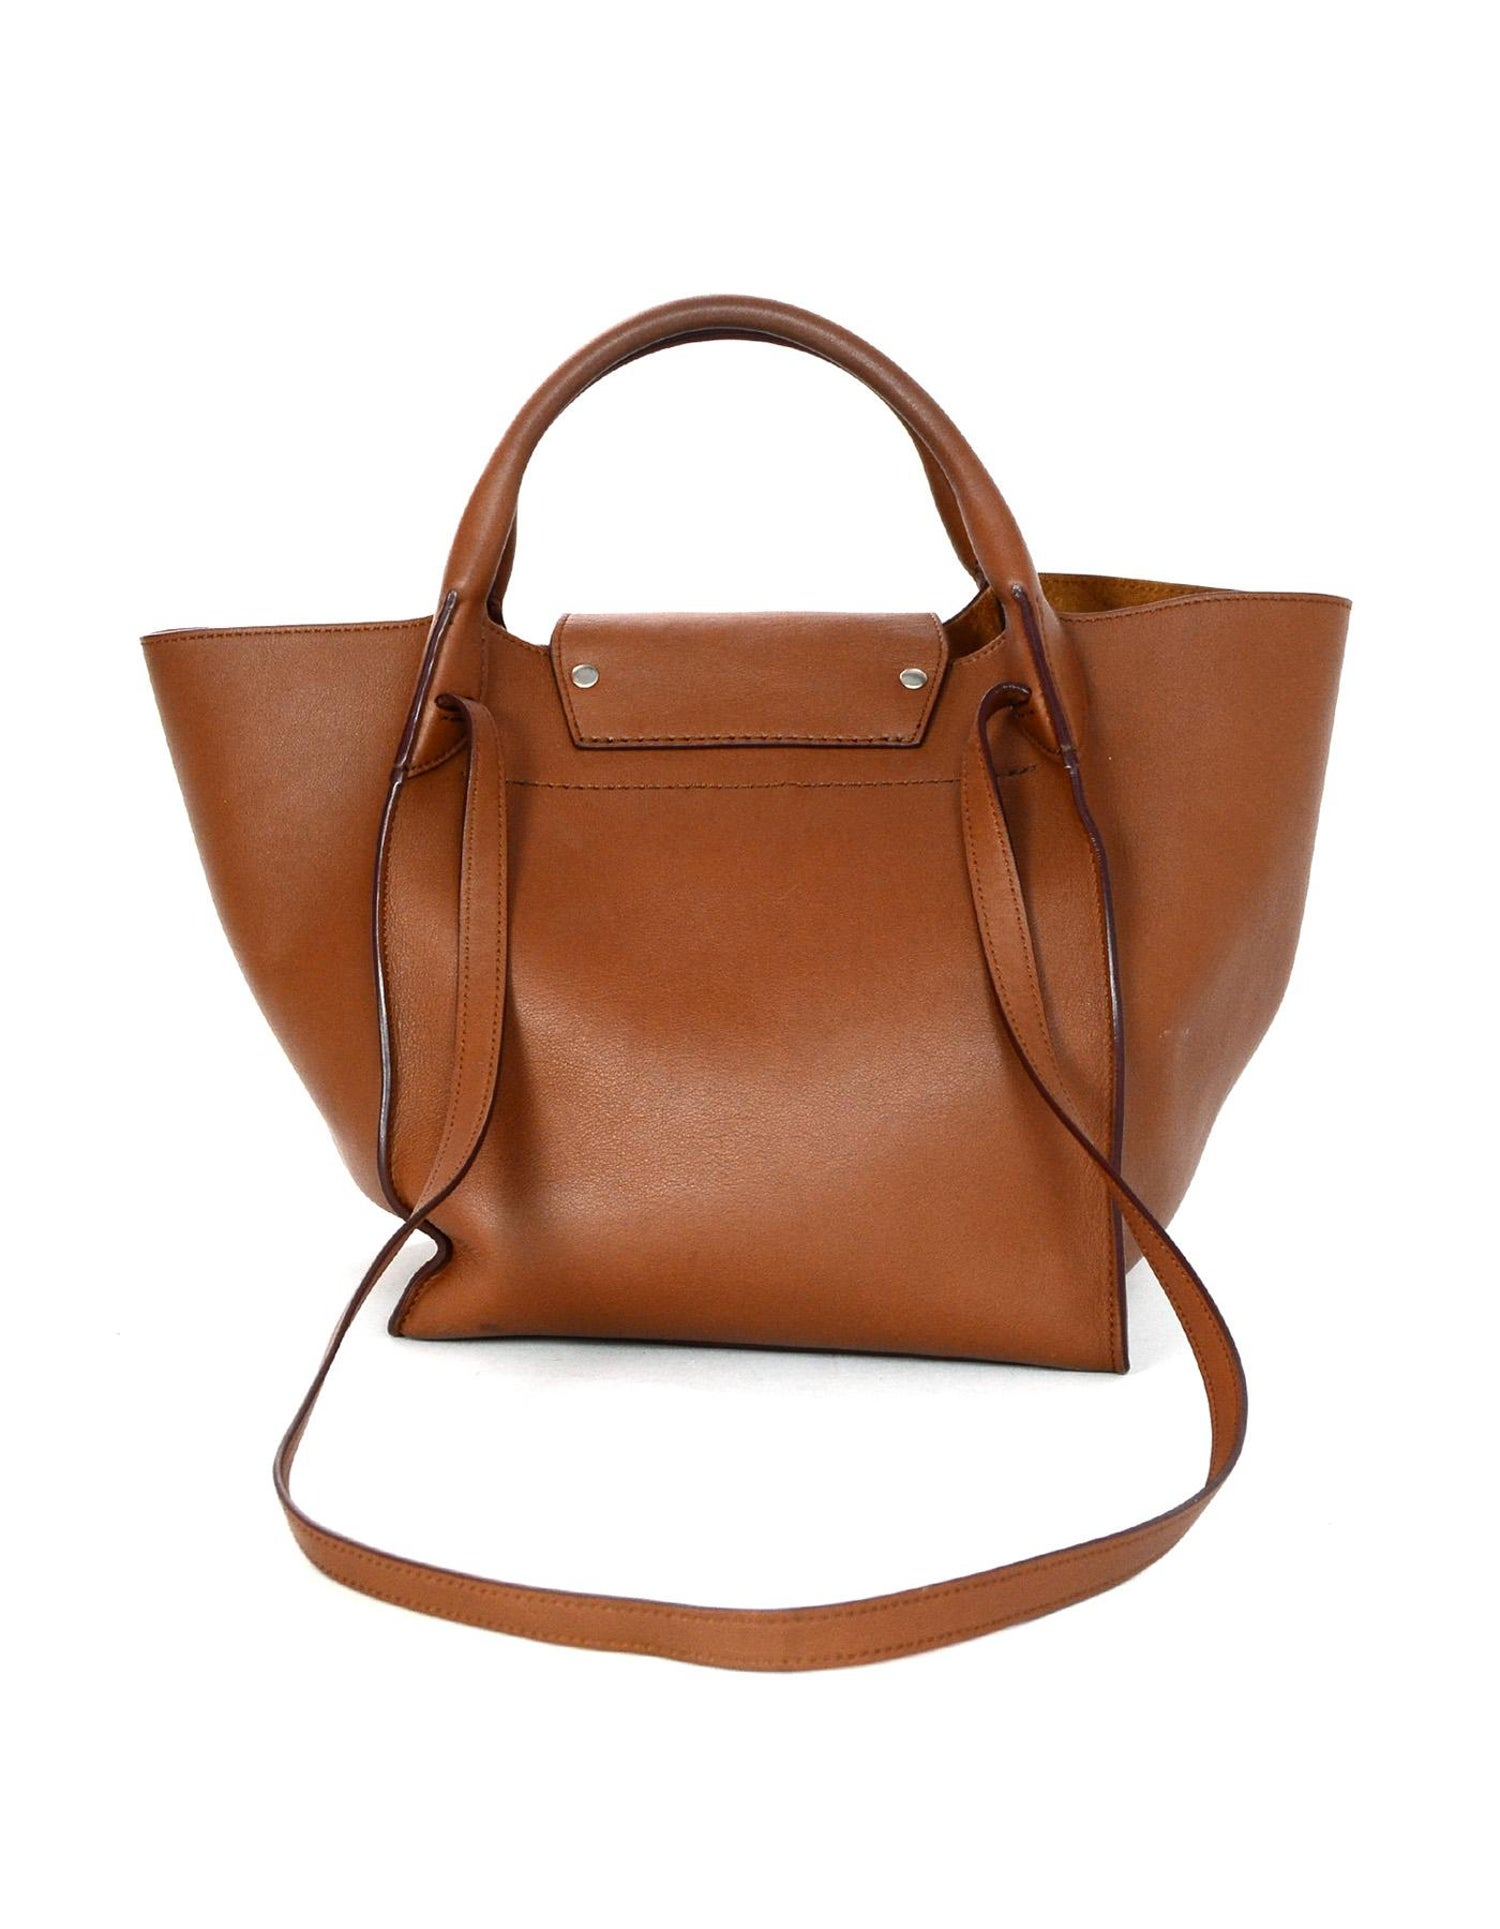 5db3563457 Celine 2018 Tan Leather Small Big Bag w  Buckle and Strap For Sale at  1stdibs